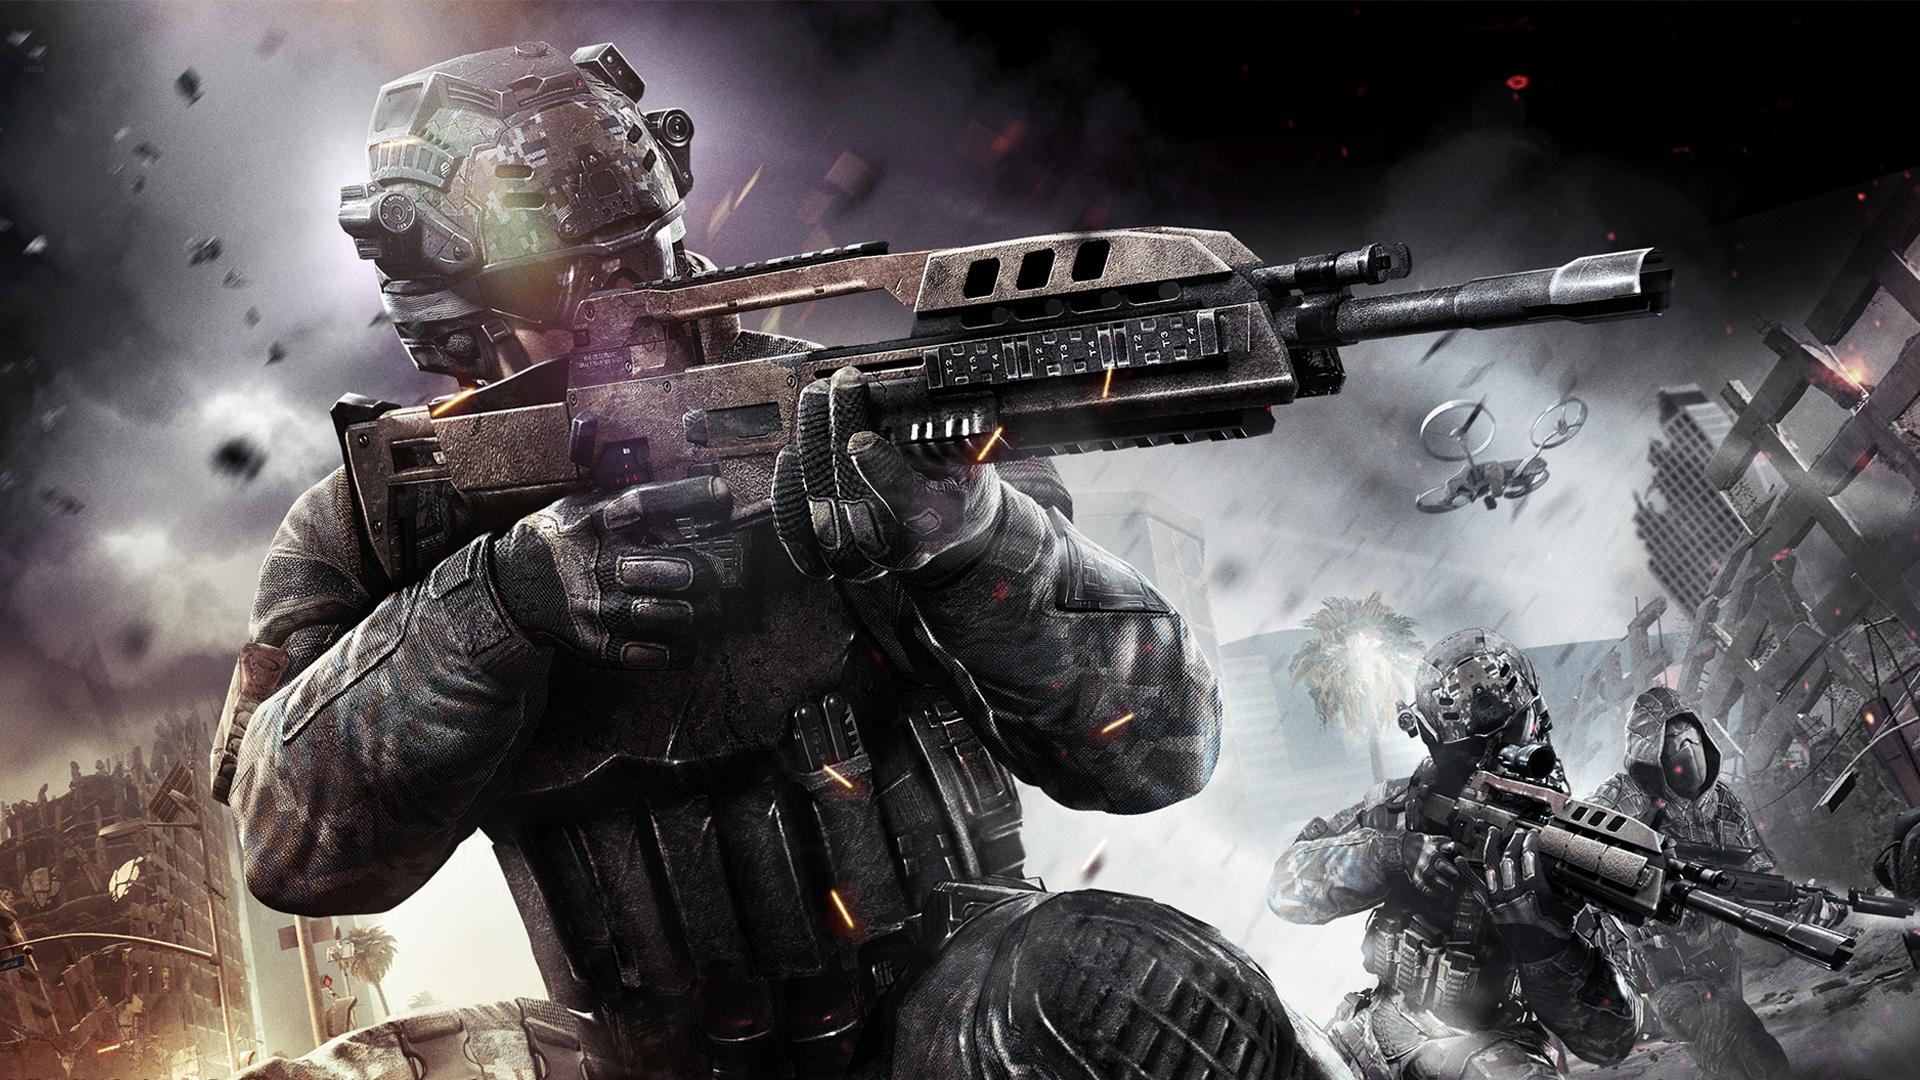 Download Black Ops 2 Video Game wallpaper 1920x1080 1080p hd wallpaper 1920x1080